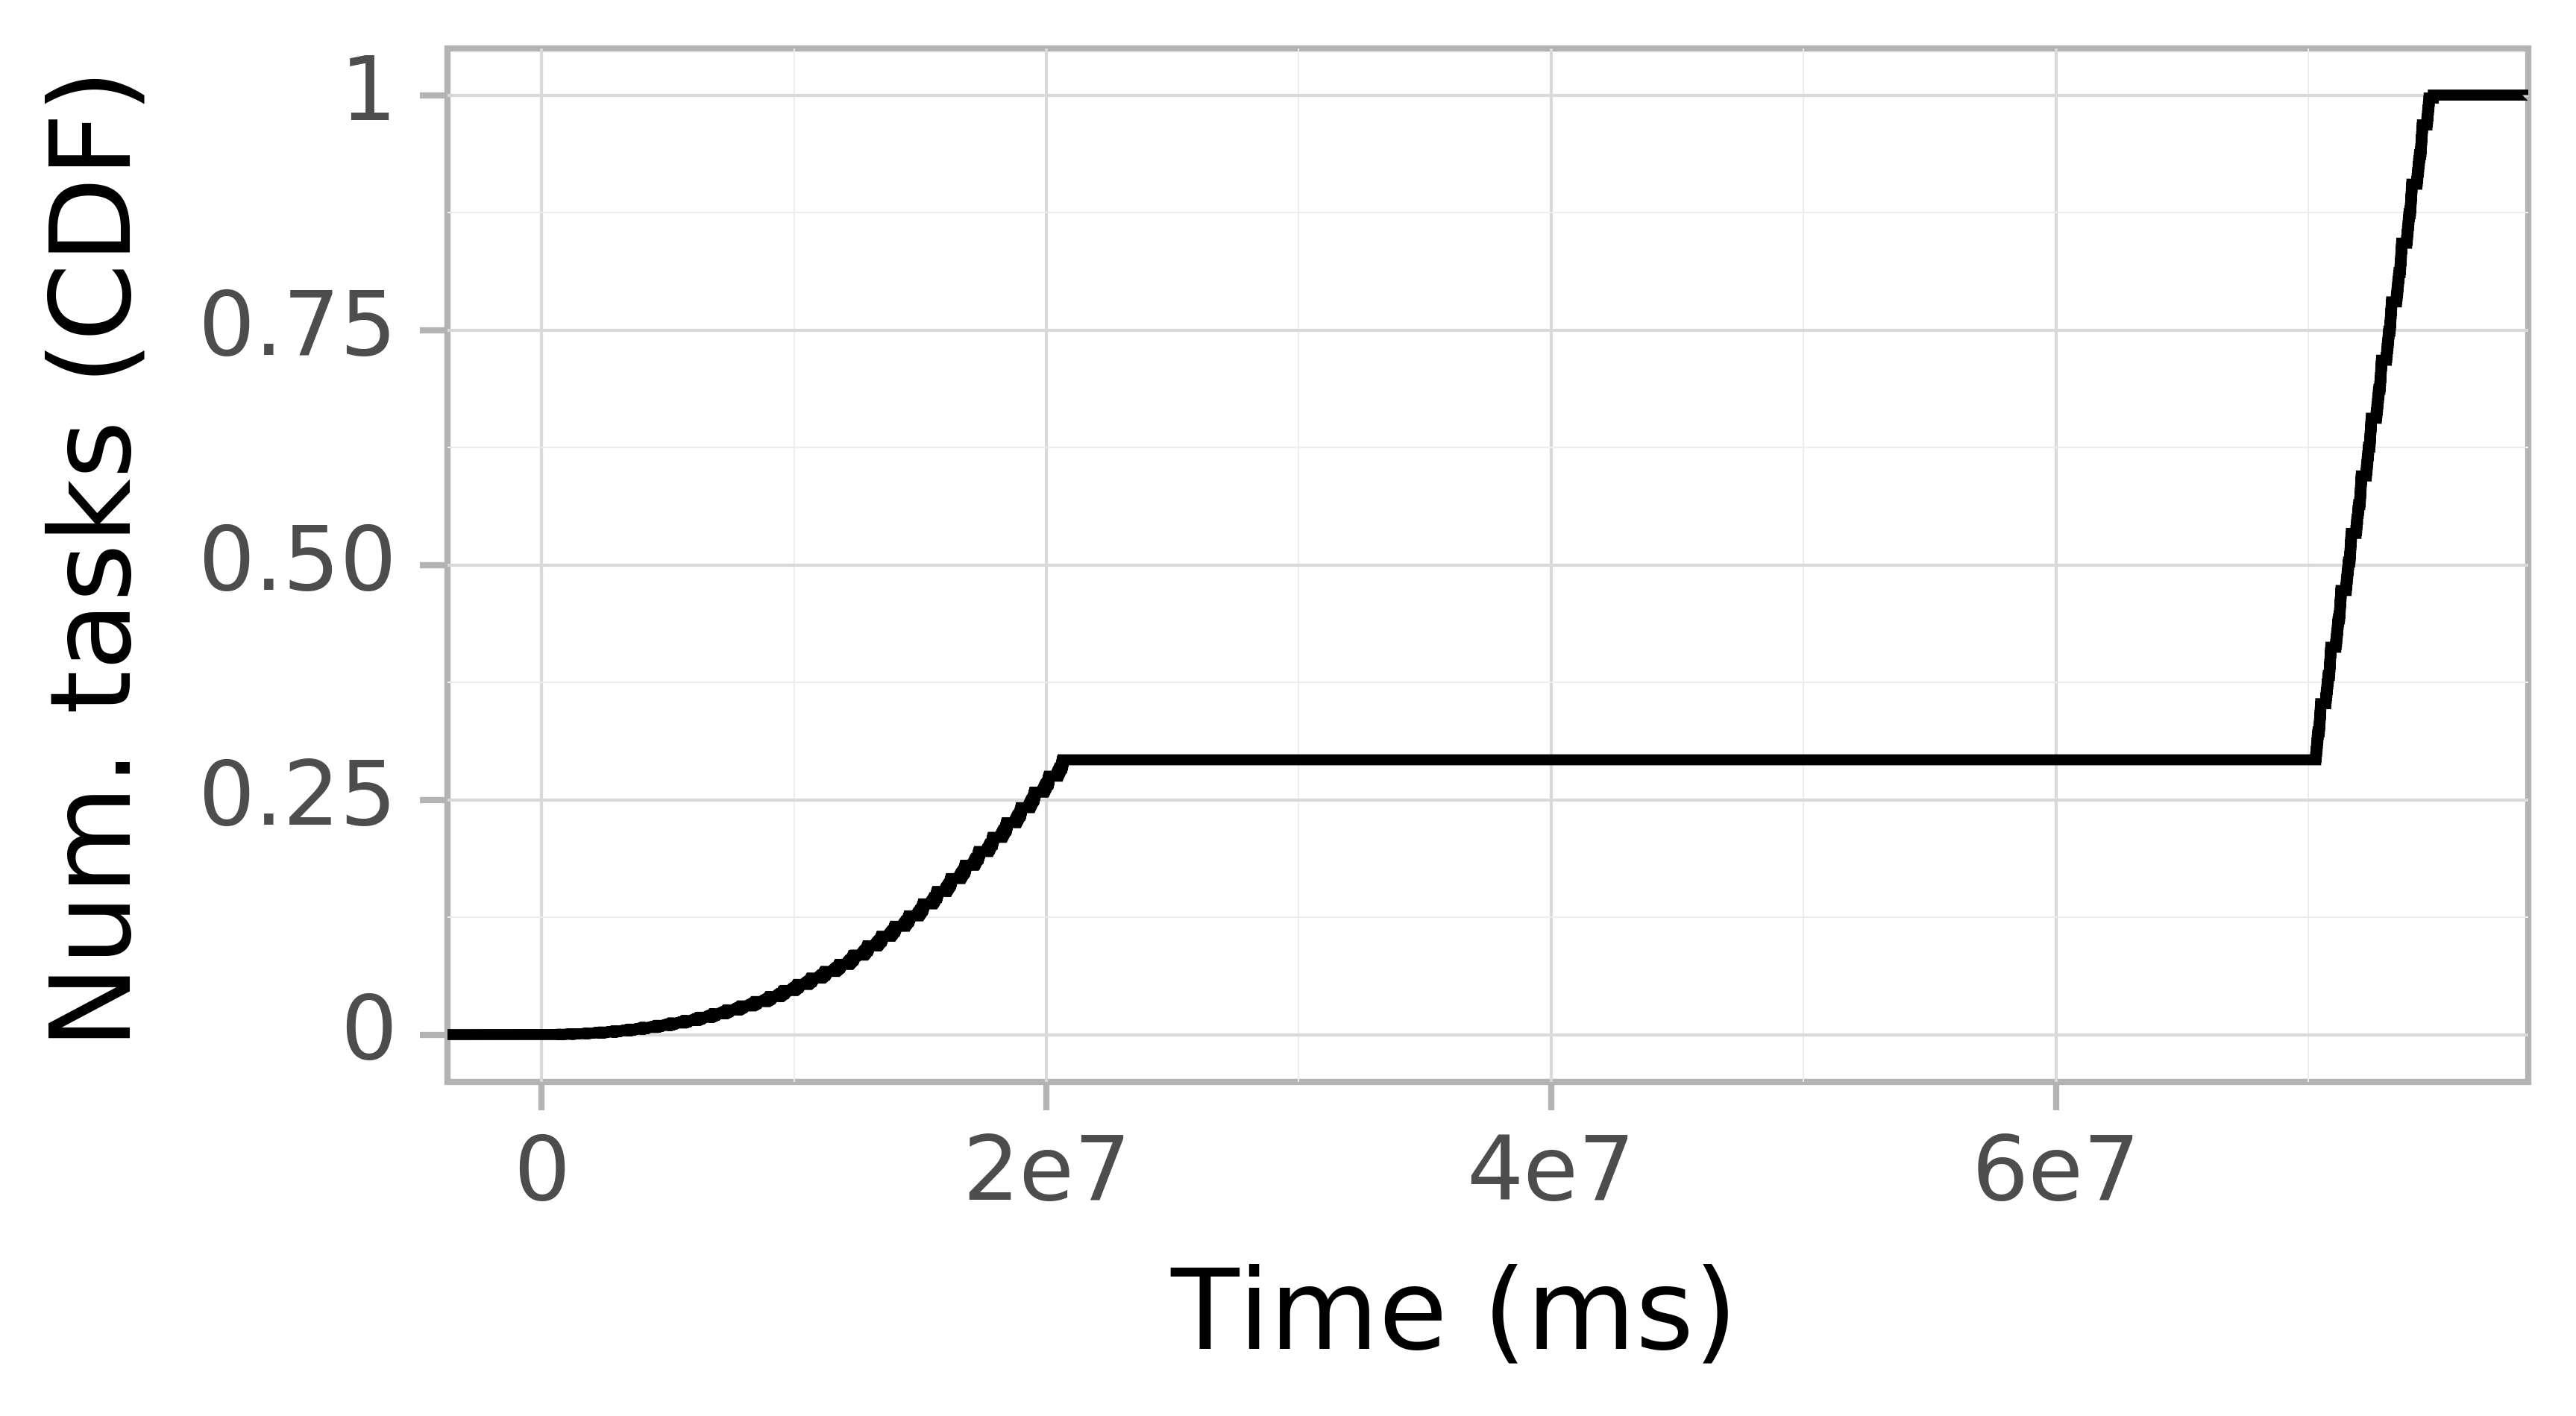 Task arrival CDF graph for the askalon-new_ee52 trace.